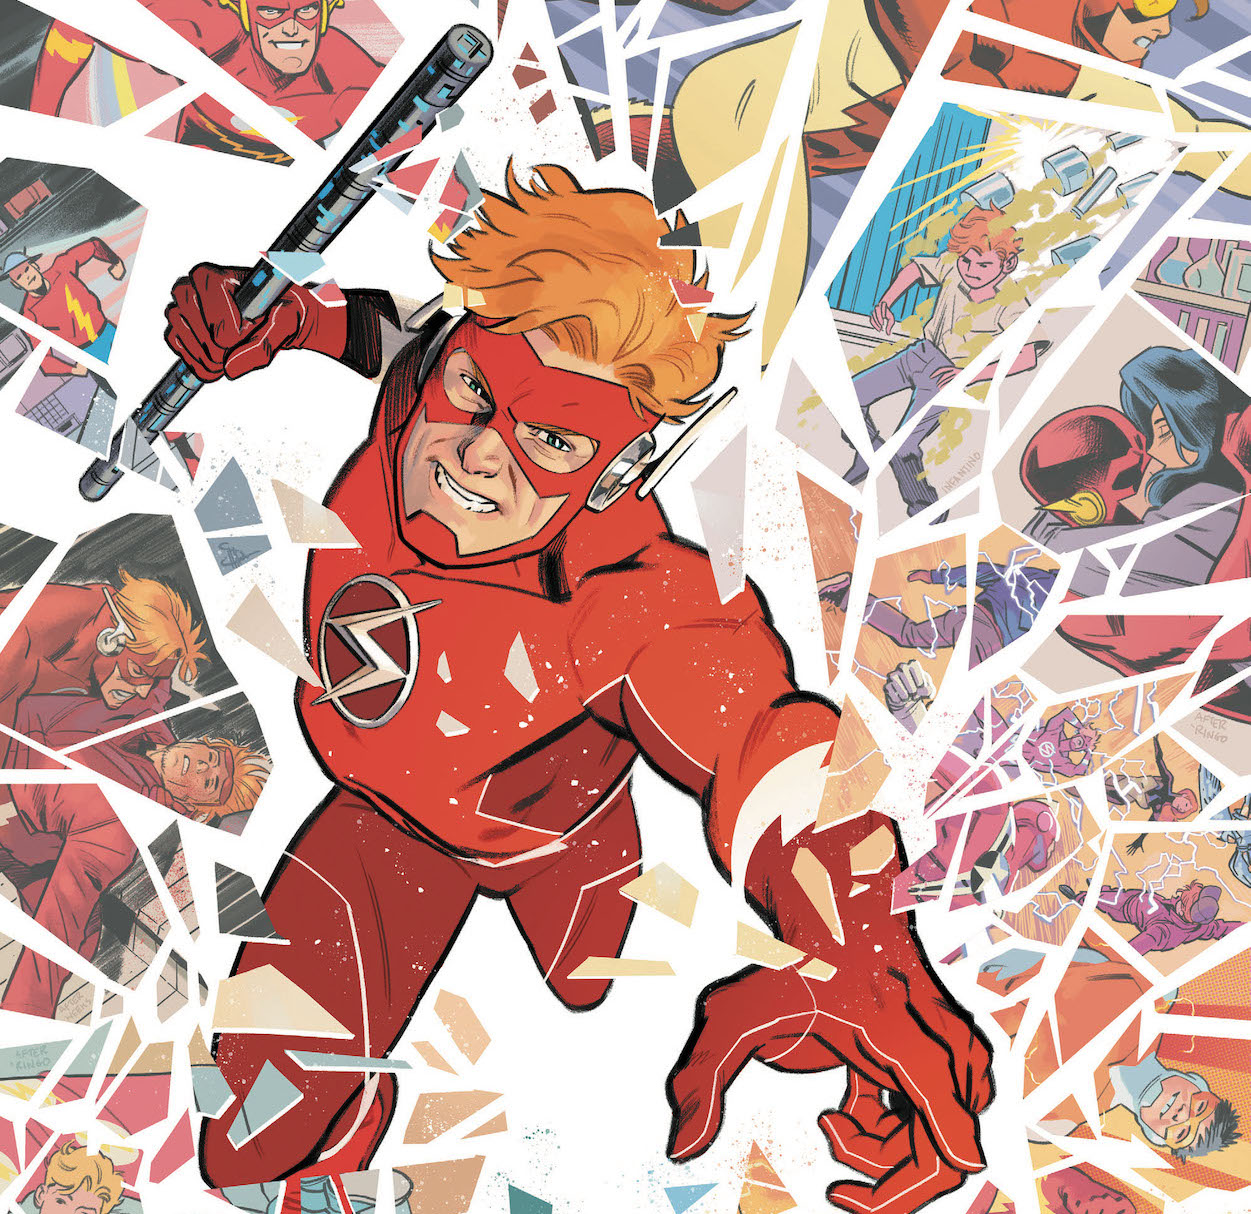 Nothing has prepared Wally West for this next stop on his journey.